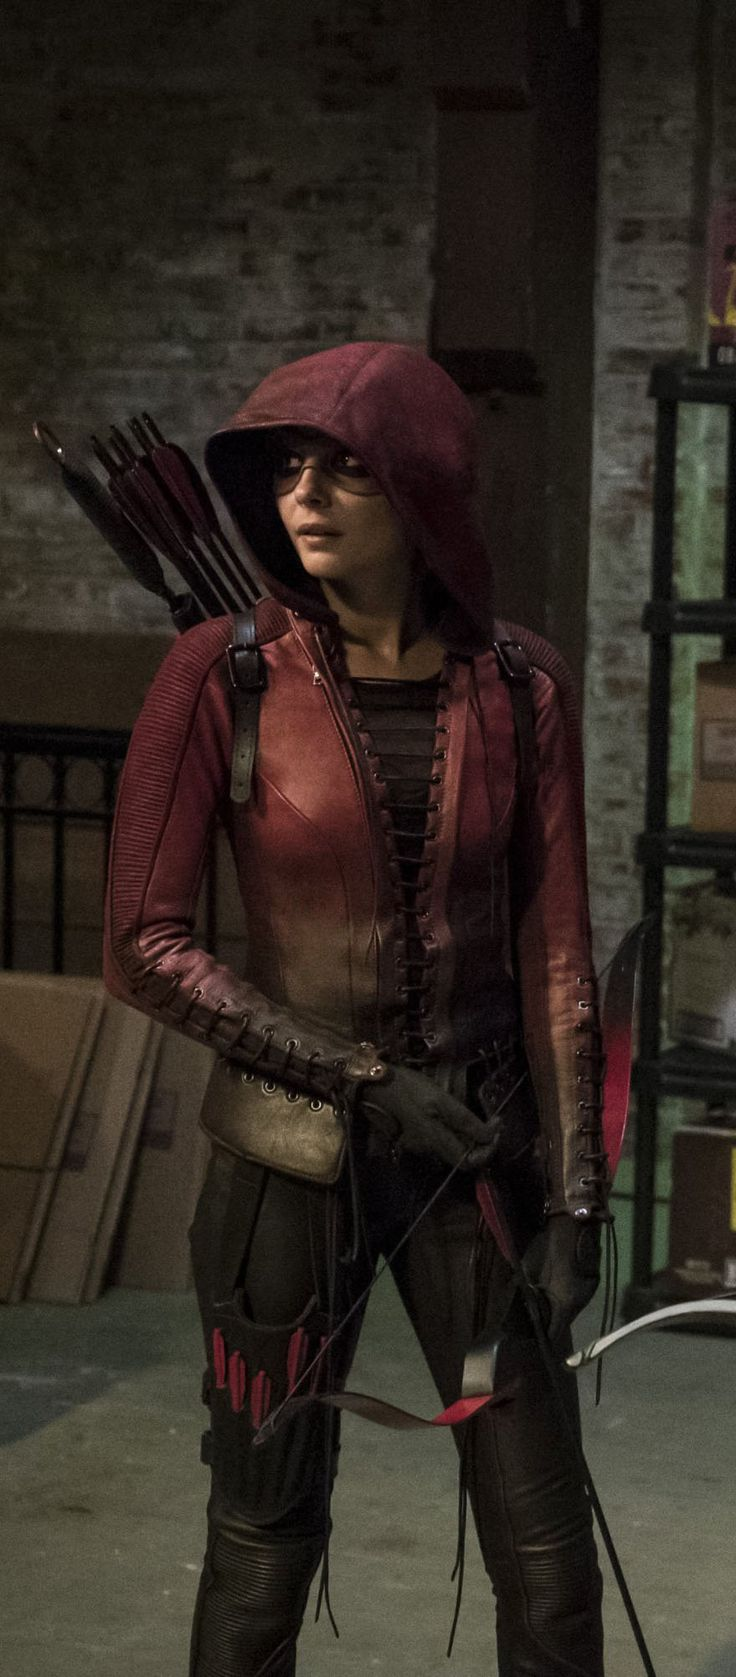 Arrow 4x02 - Speedy / Red Arrow (Thea Queen)